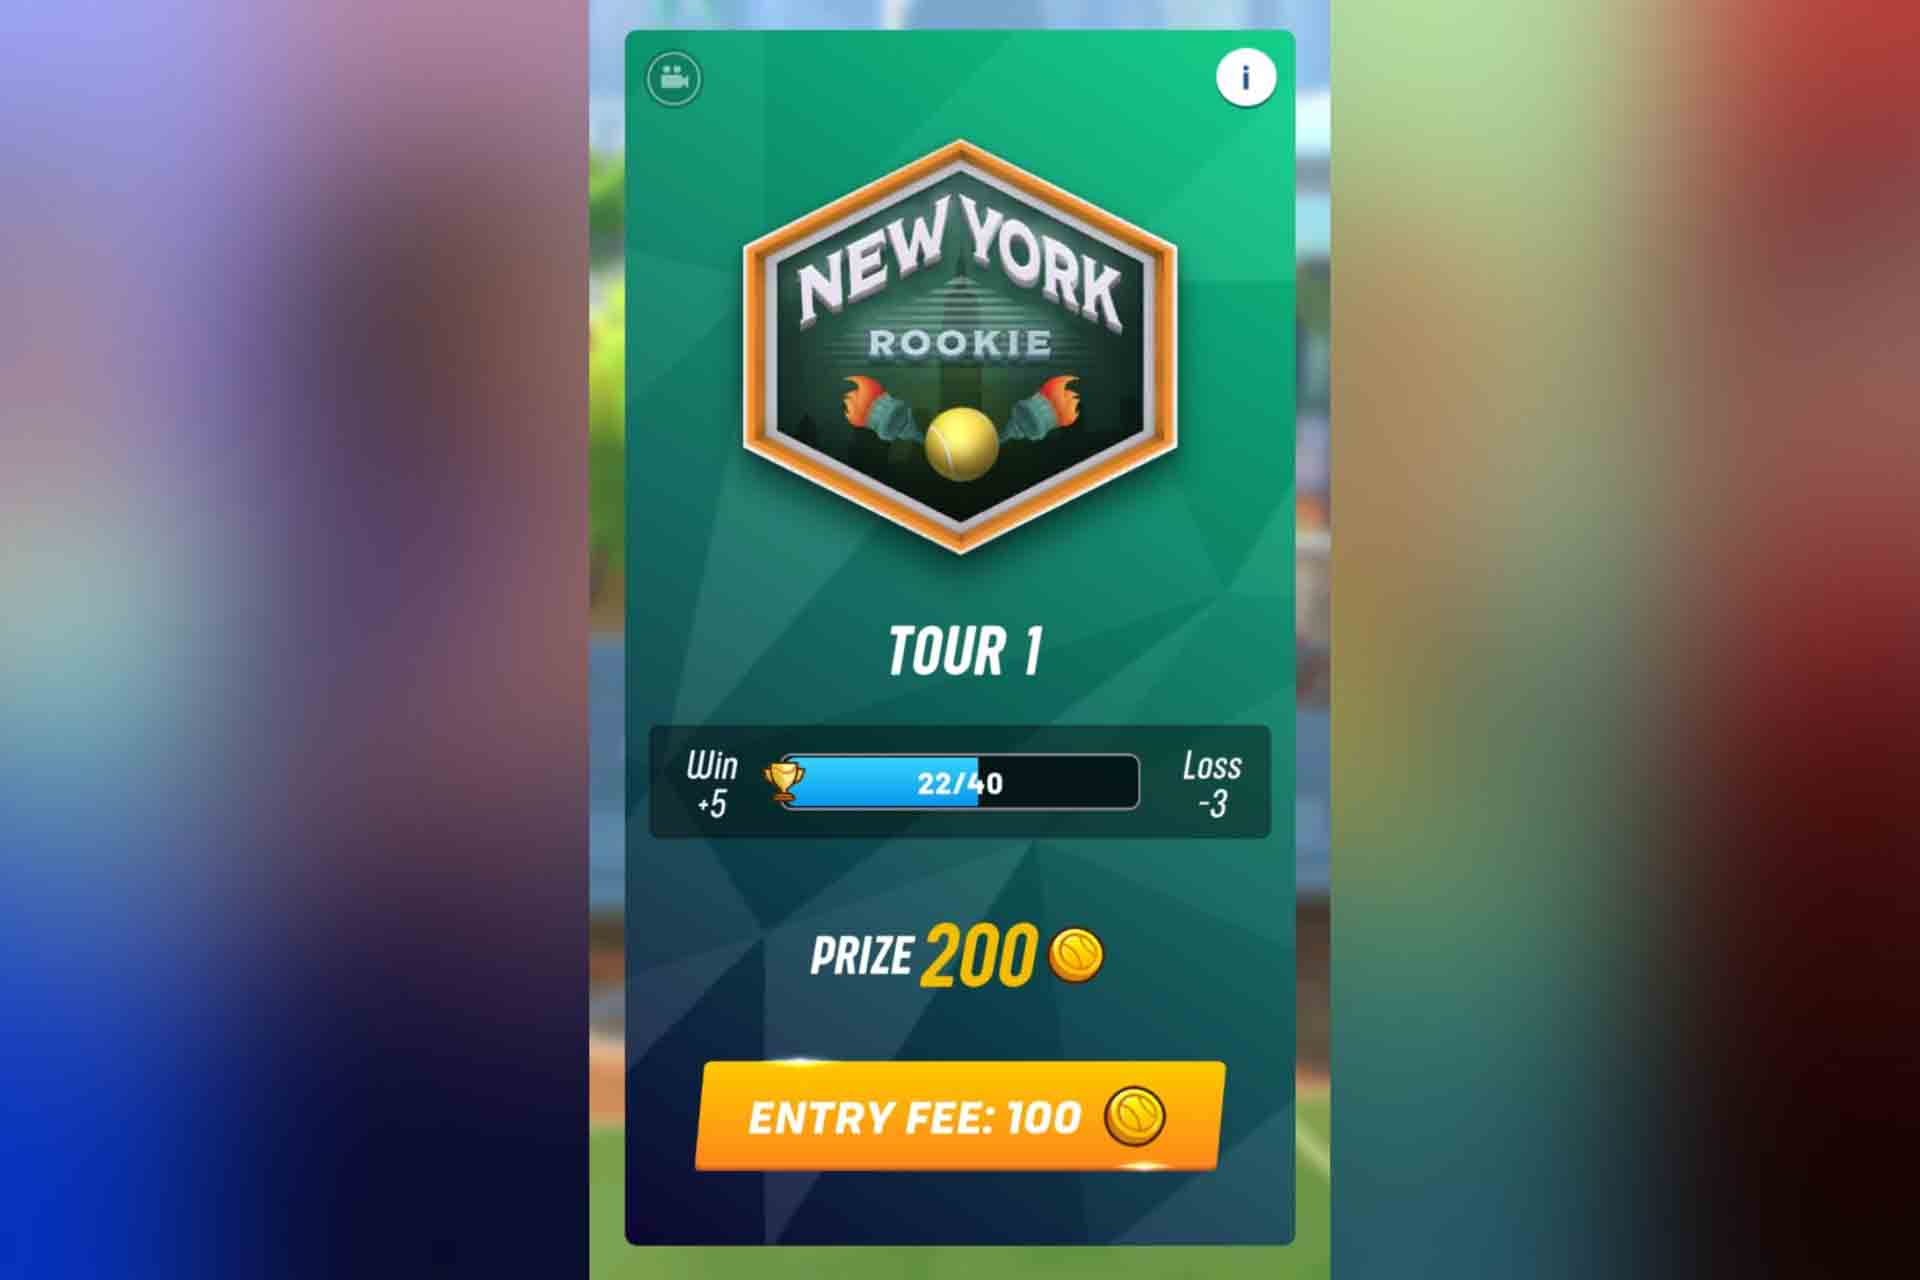 Tour 1 in Tennis Clash is New York.